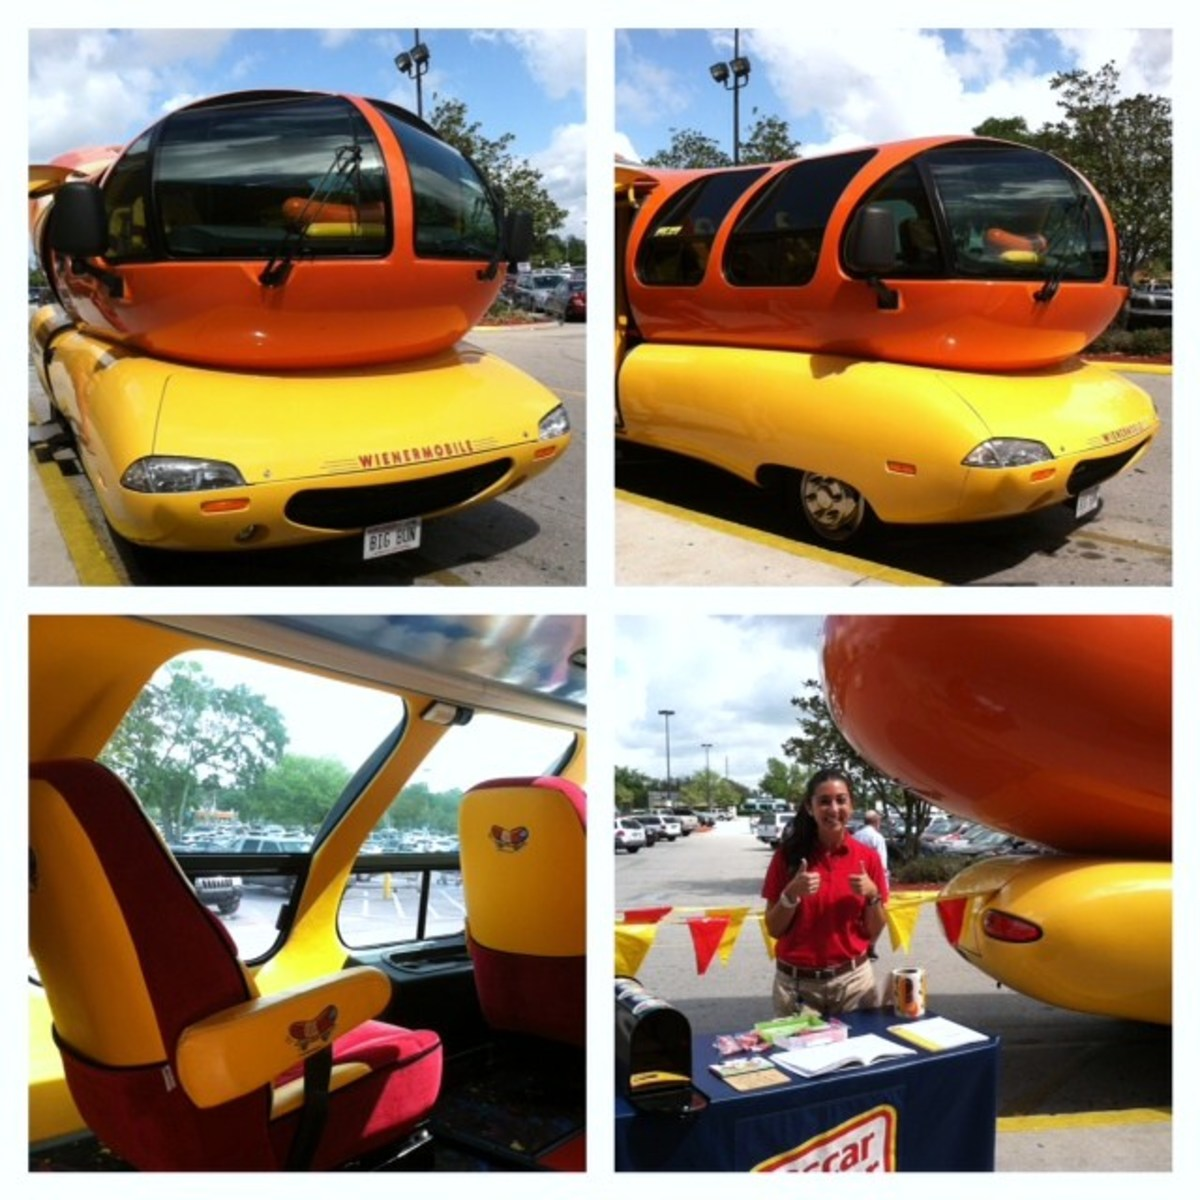 Different angles of the Wienermobile and a Hotdogger who was kind enough to pose for me.